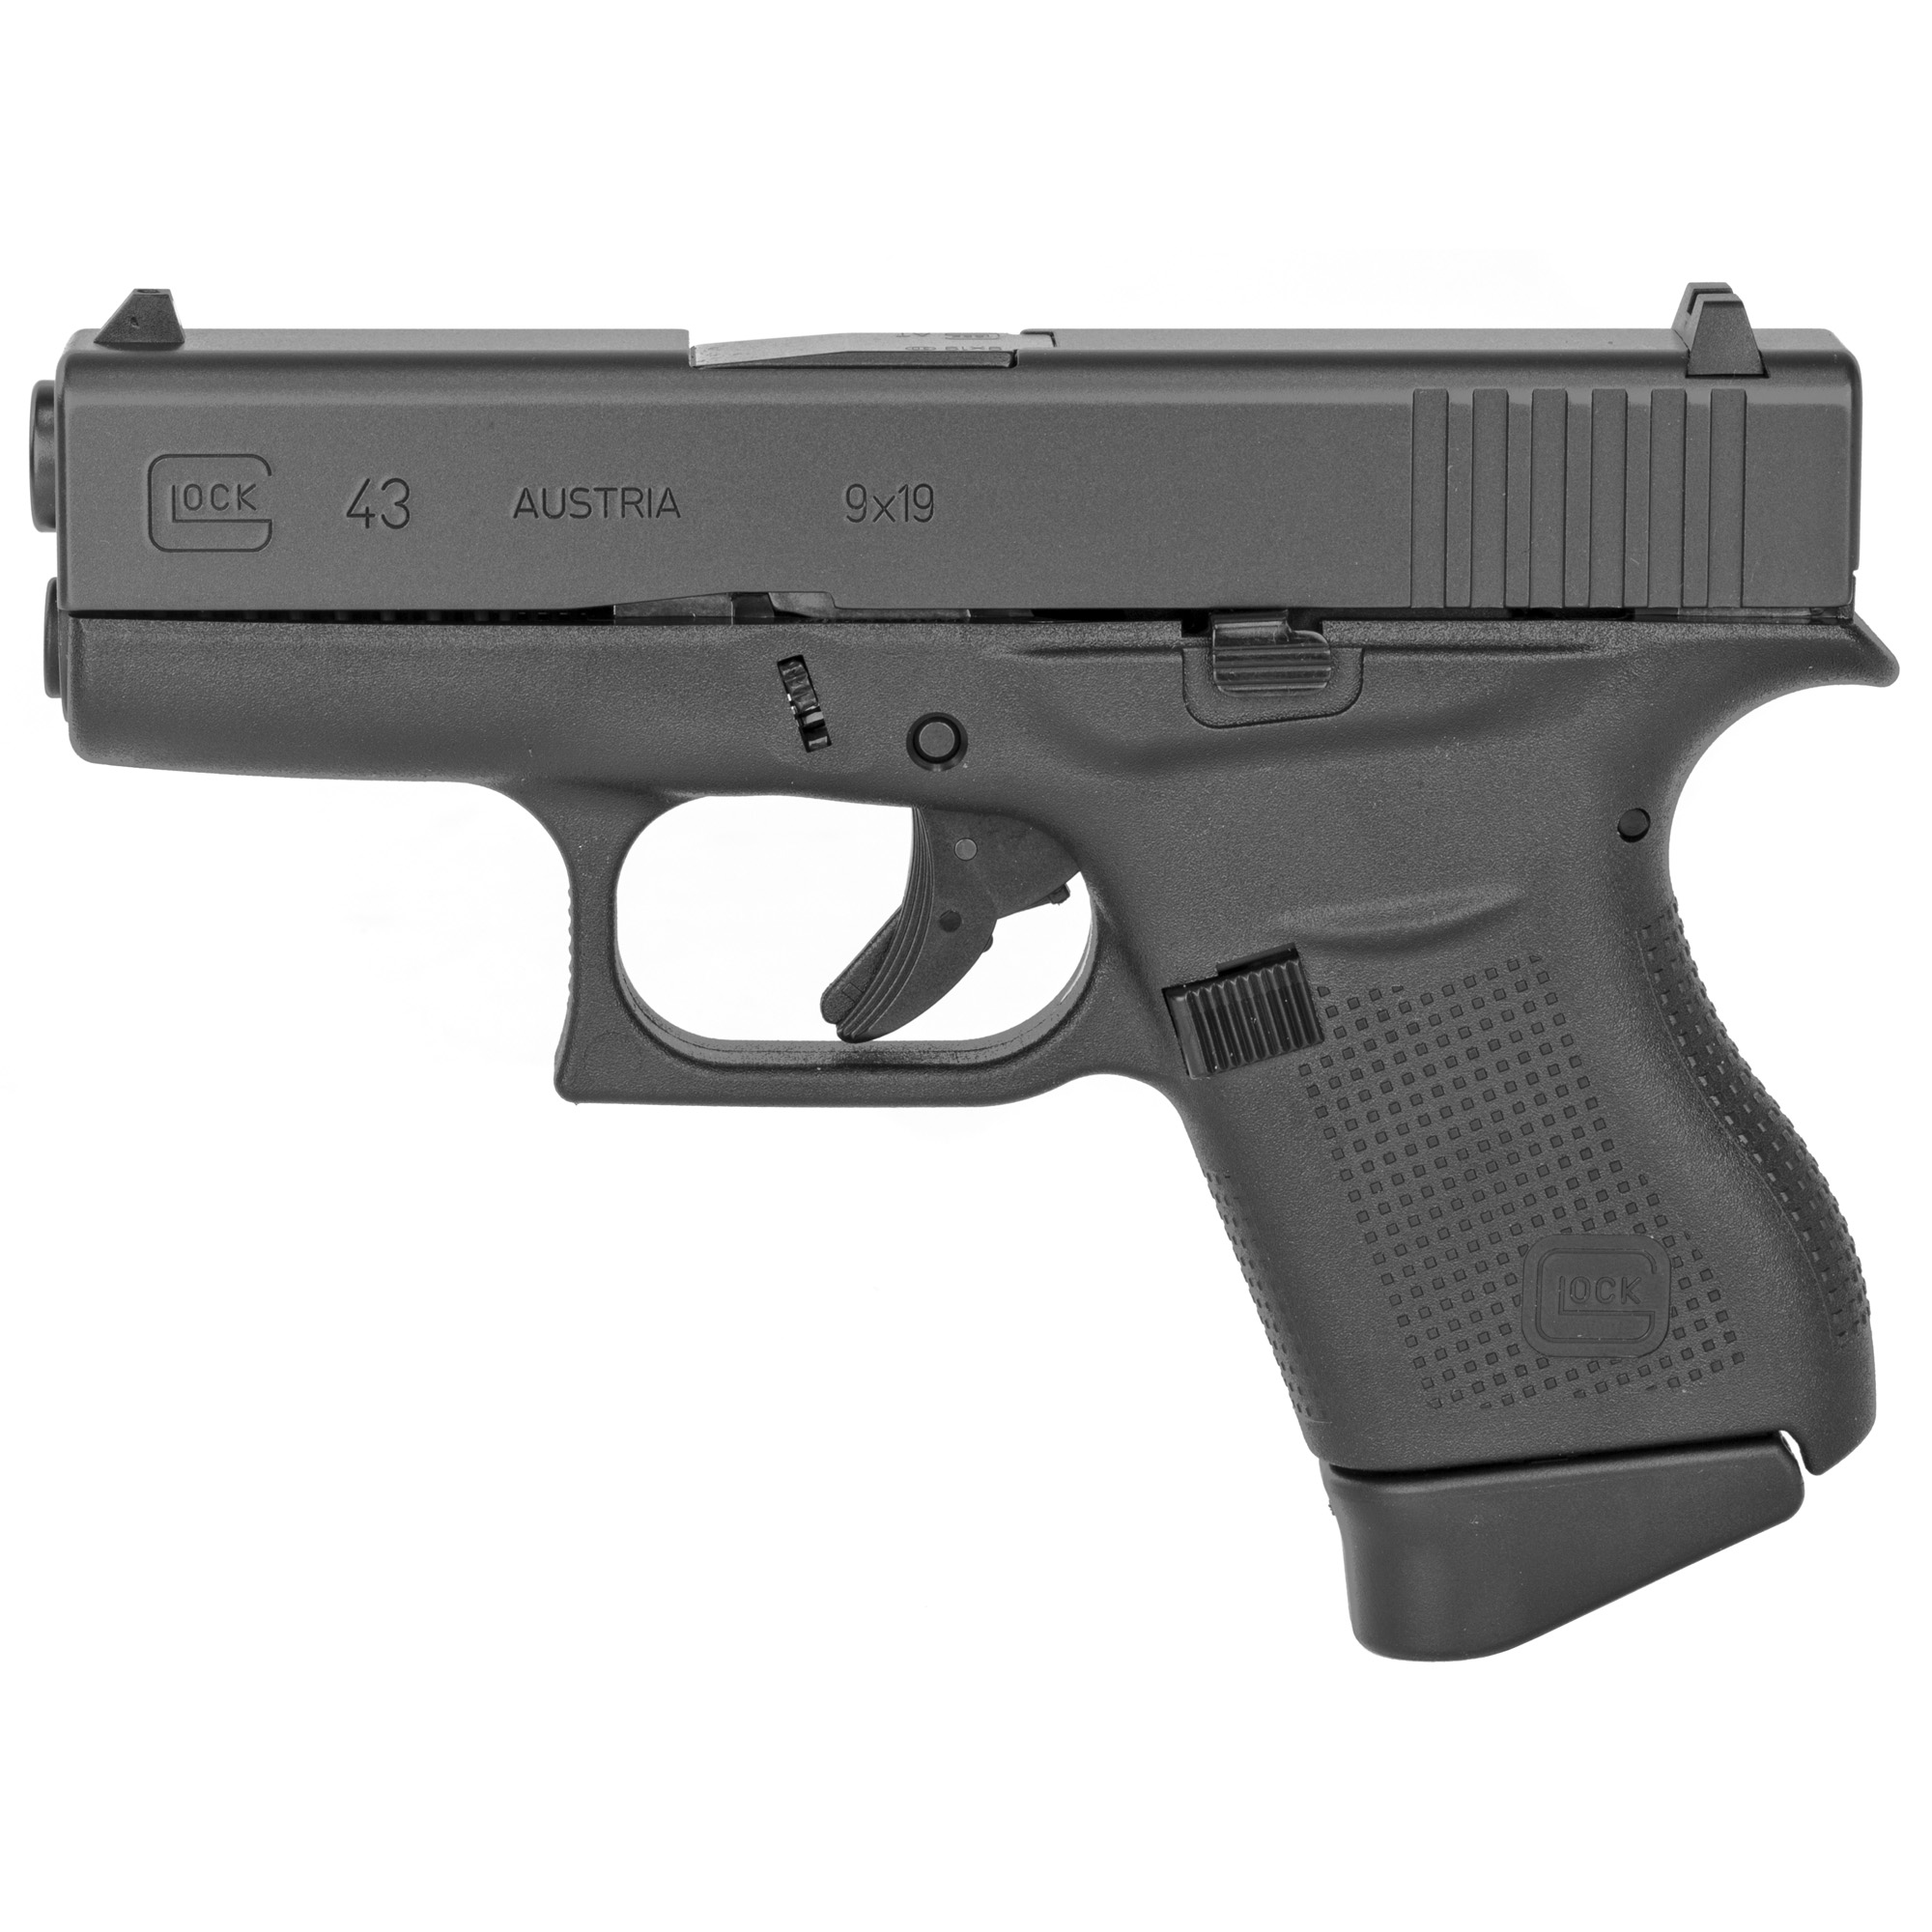 NEW Glock 43 9mm Subcompact pistol just $485 out-the-door!